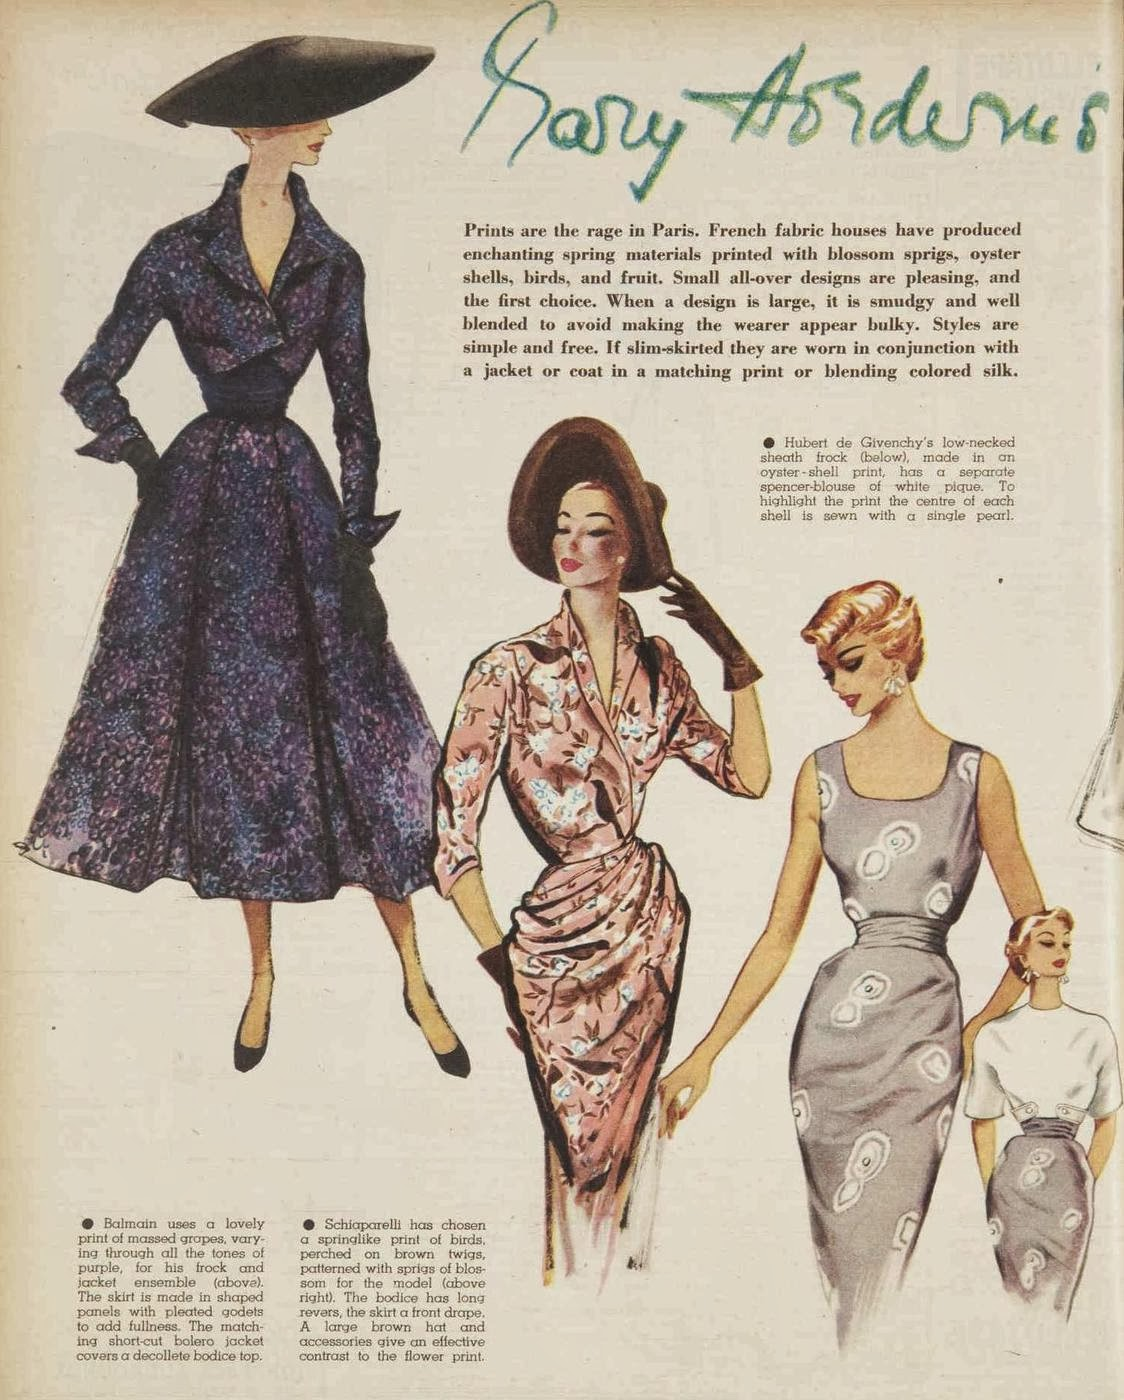 Kitten Vintage: Fashion of 1953 and 80 Years of the AWW